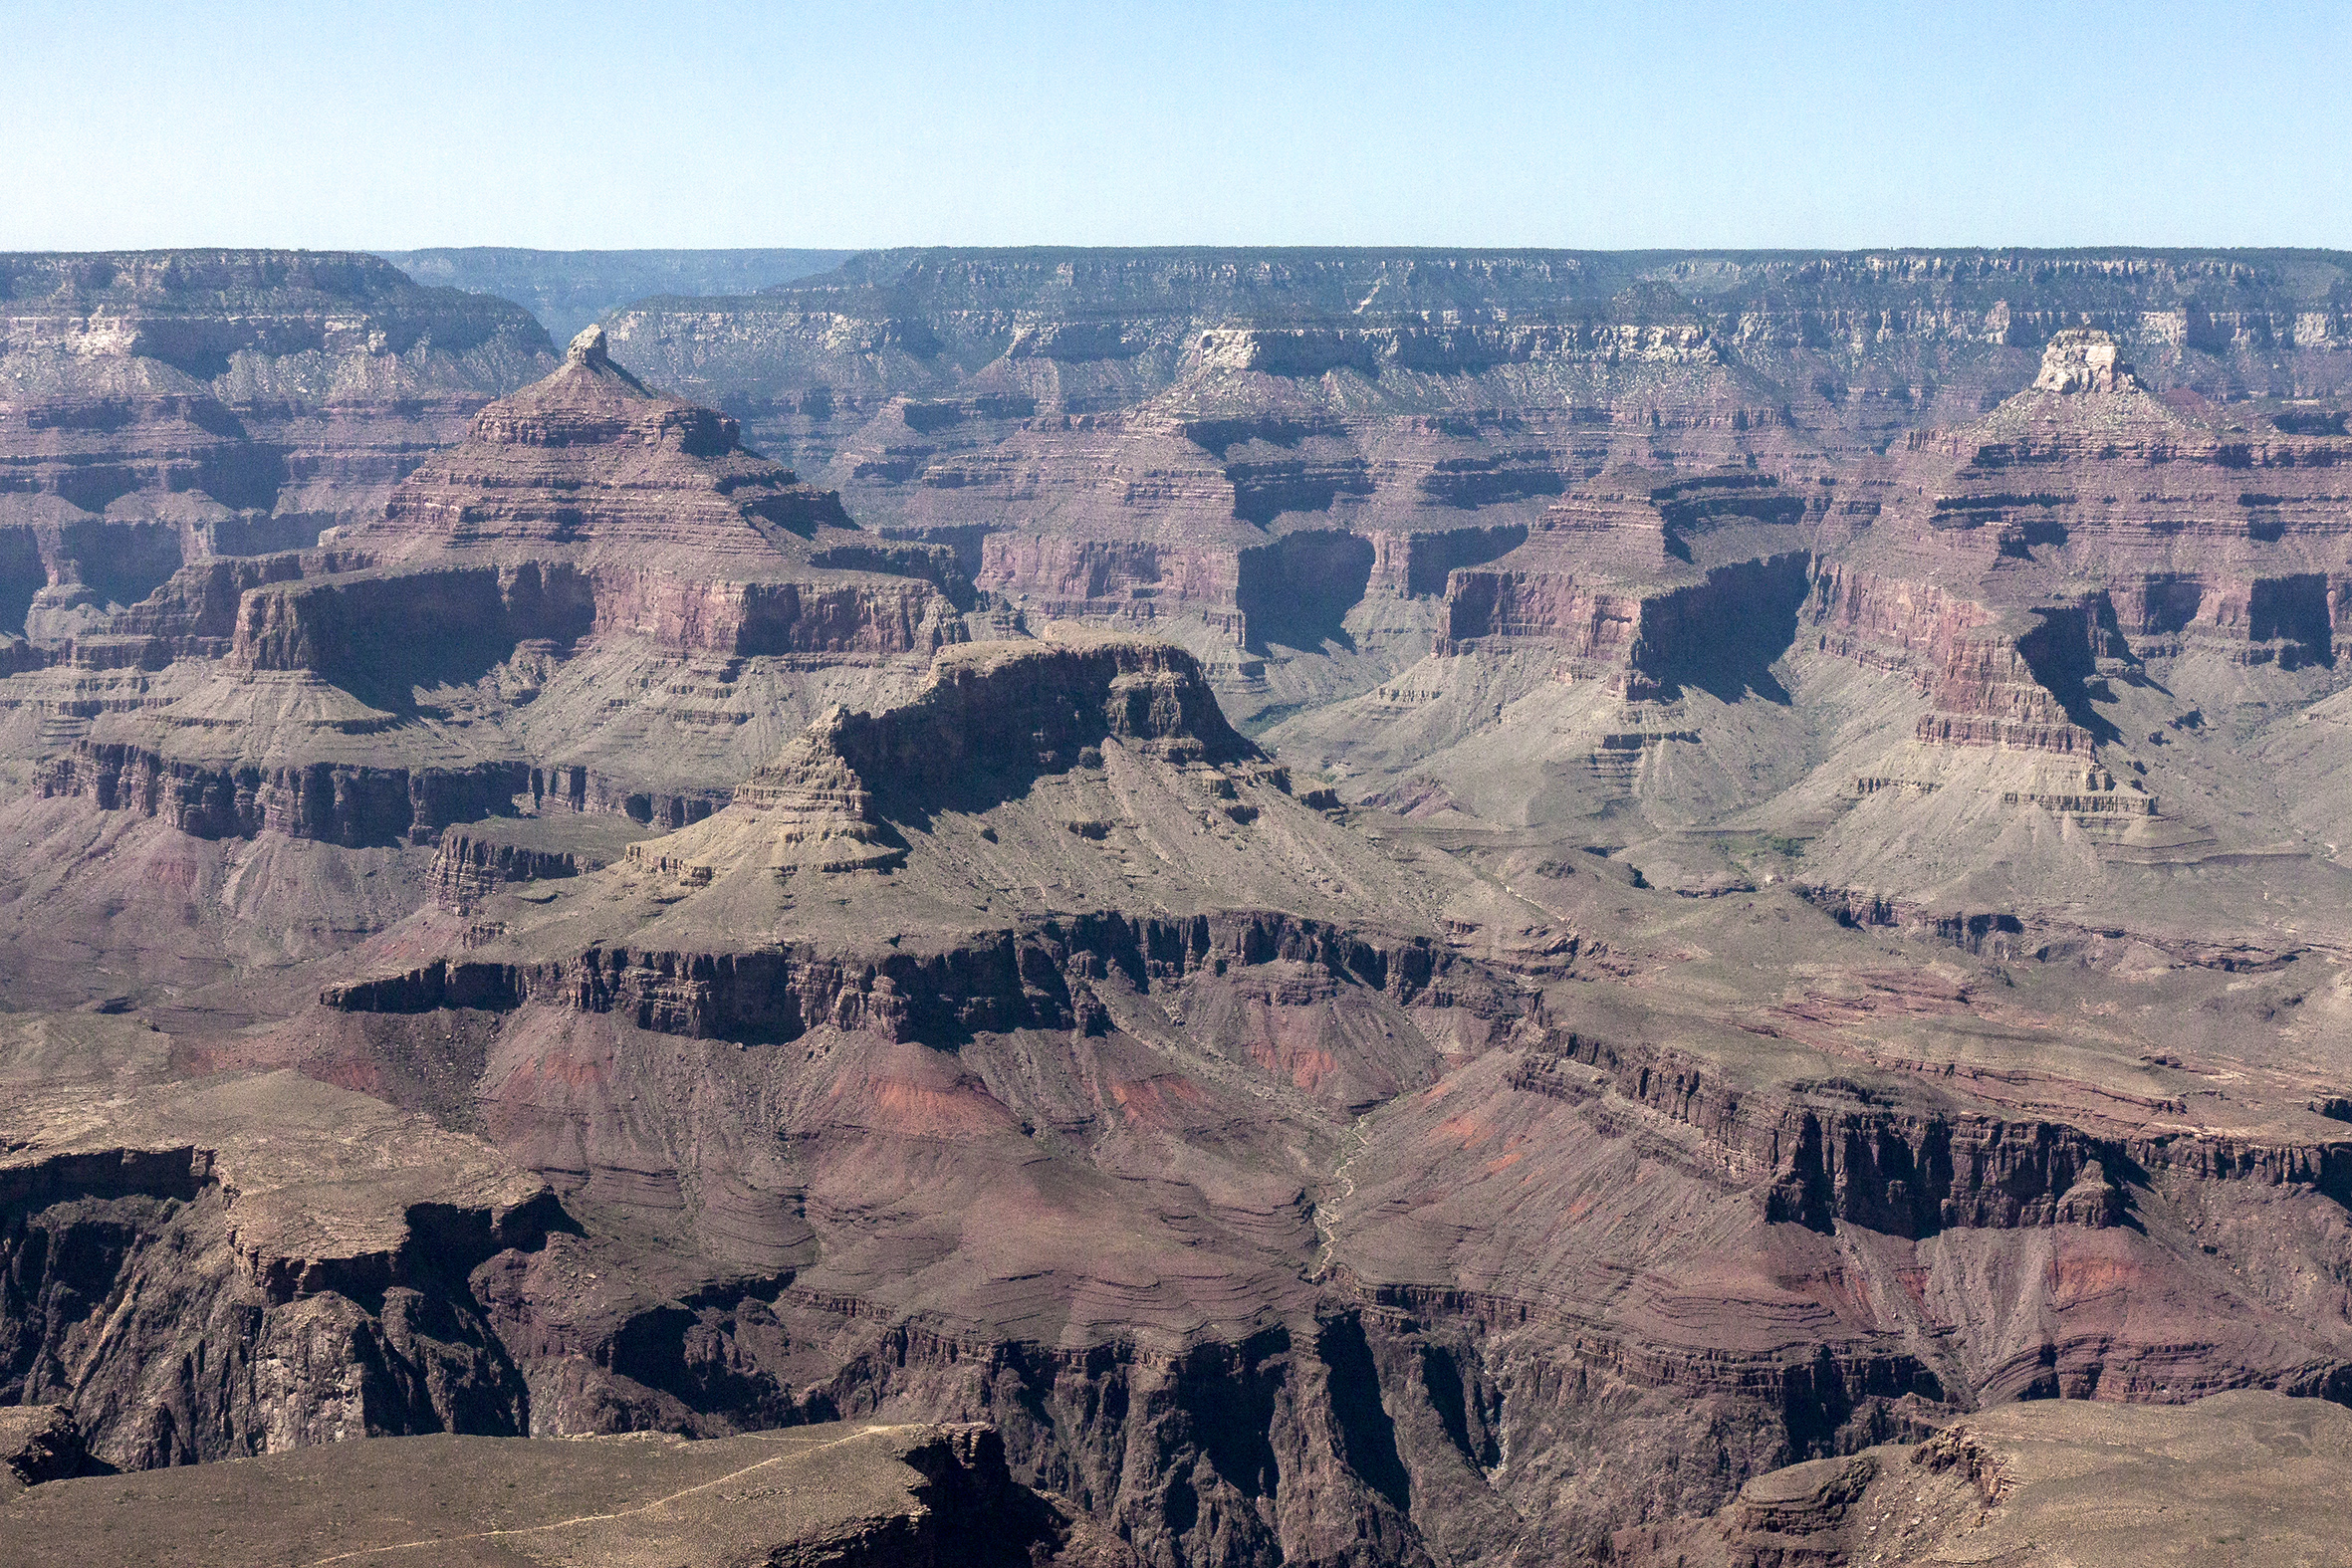 voyages-grand-canyon-usa-ouest-2012-marie-colette-becker-05